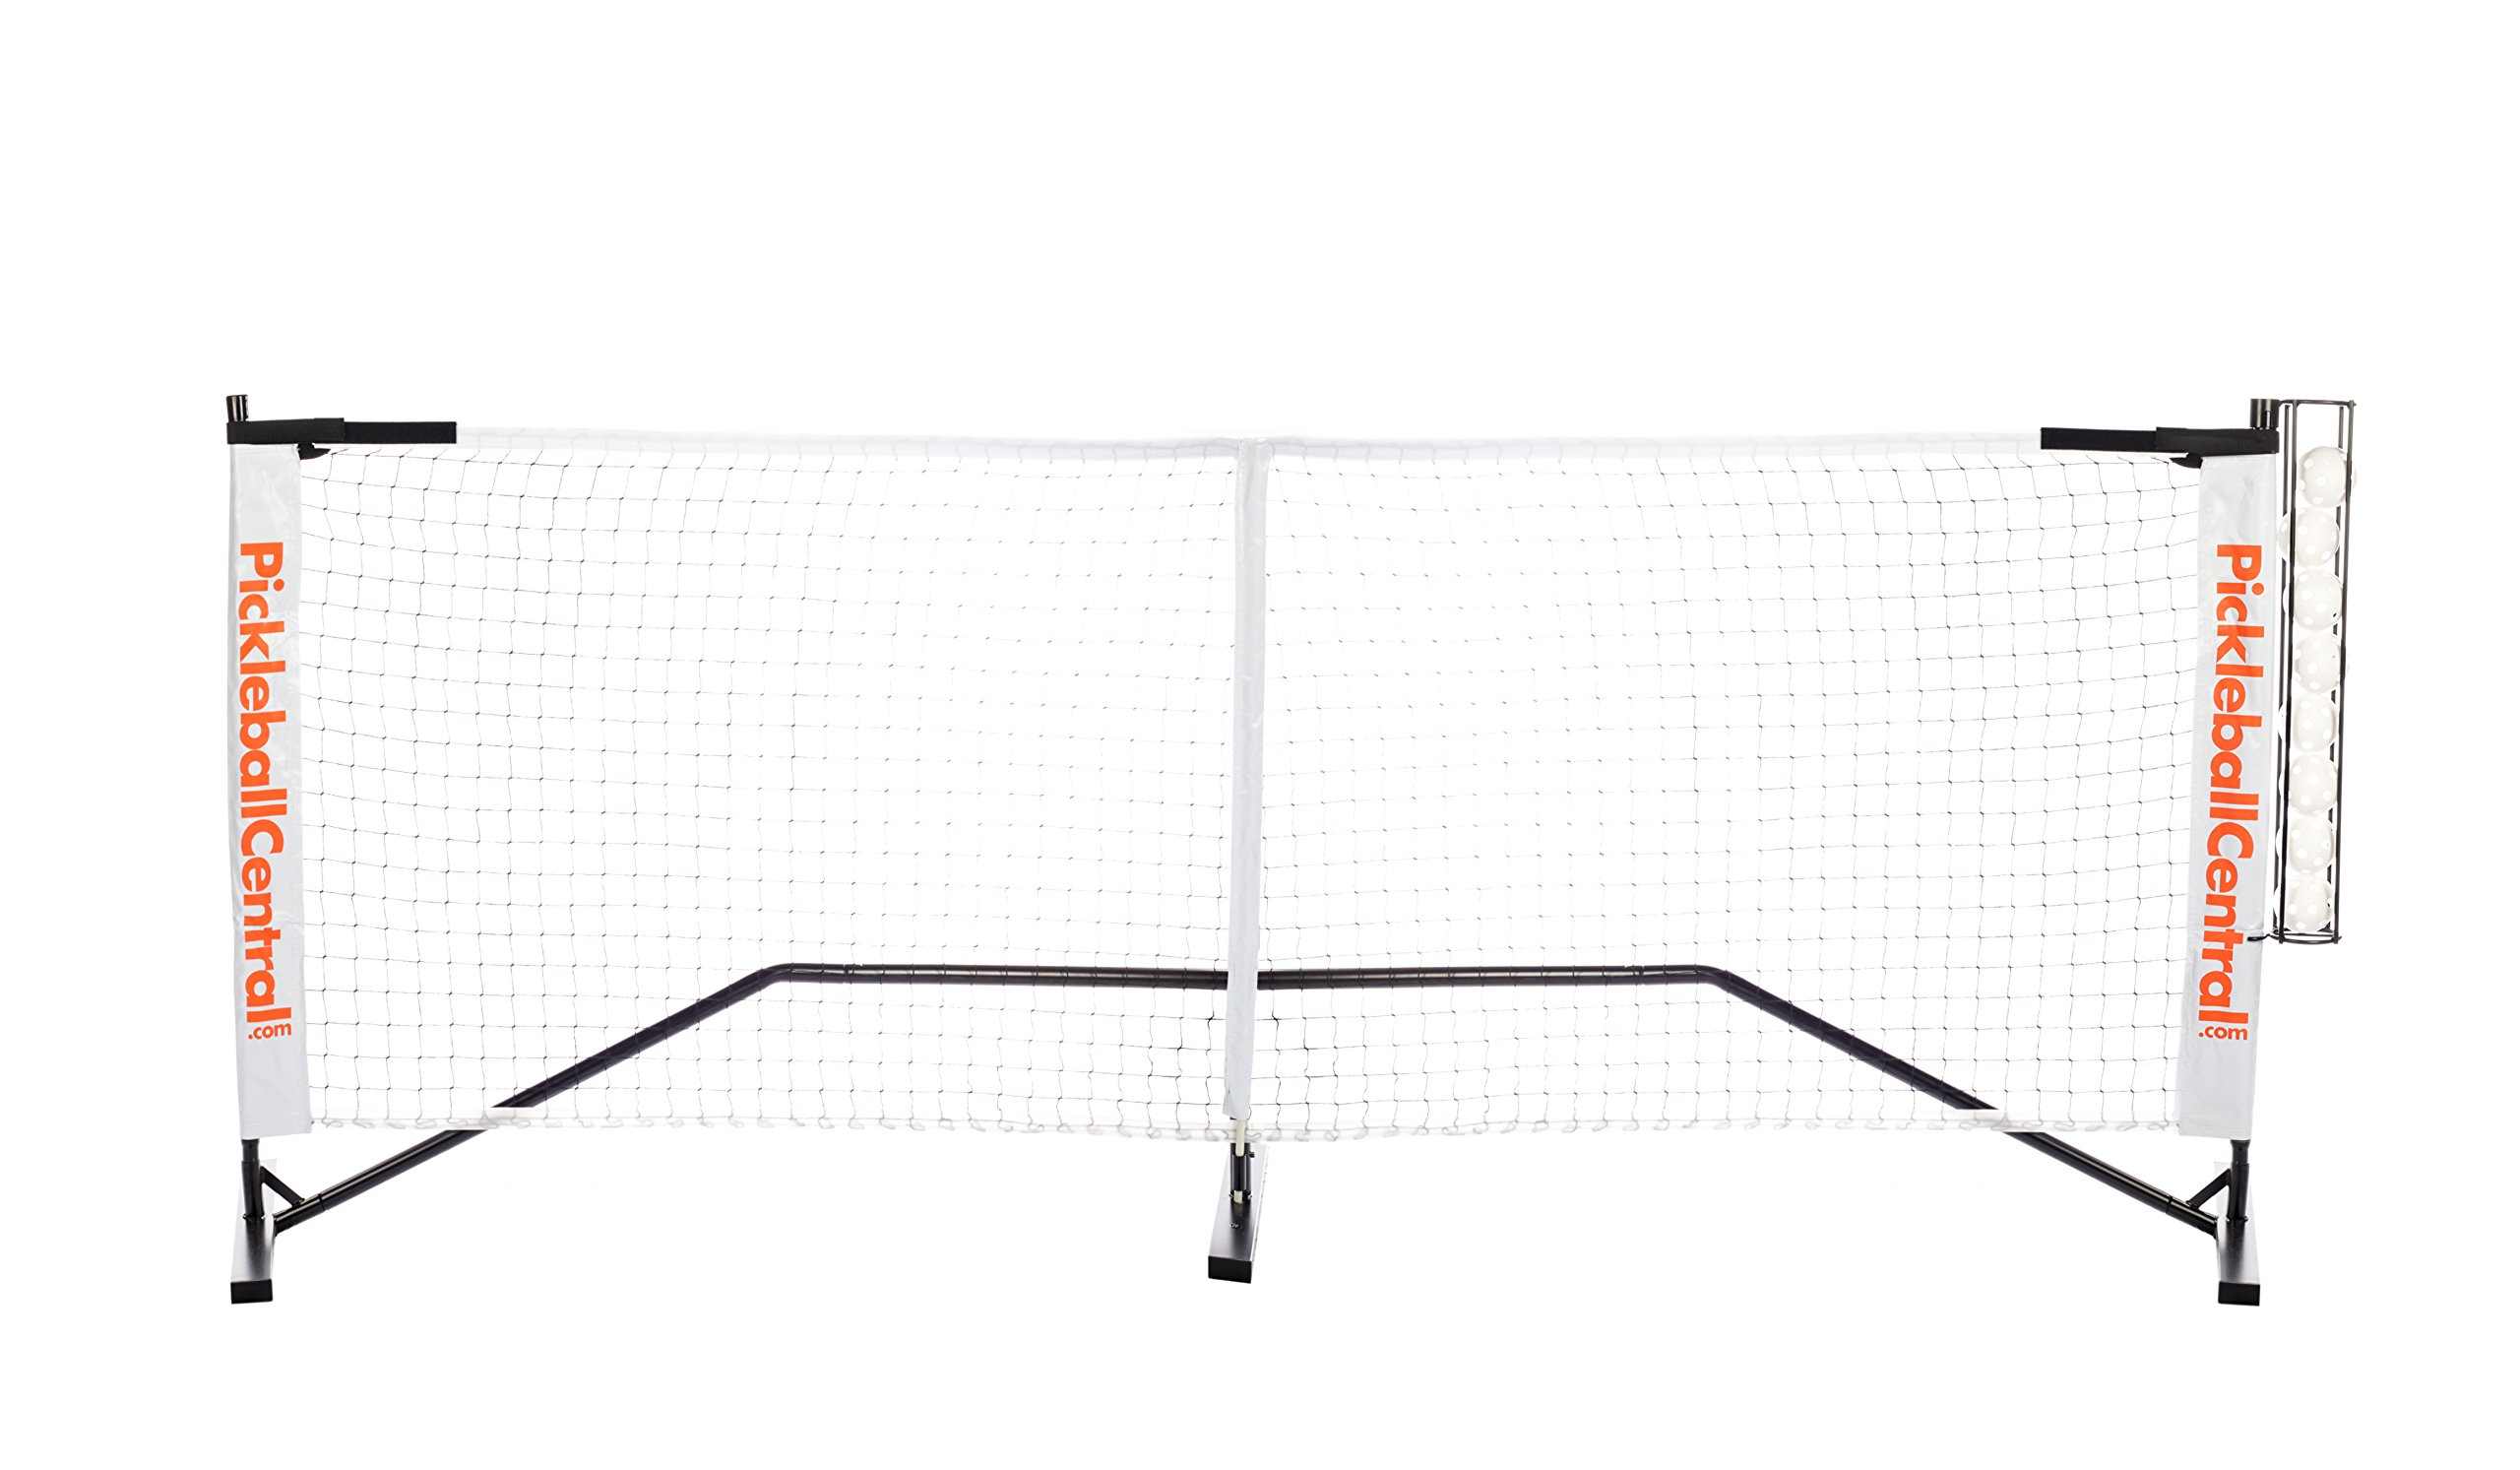 PickleballCentral Rally Portable Pickleball Net System with Ball Holder by PickleballCentral